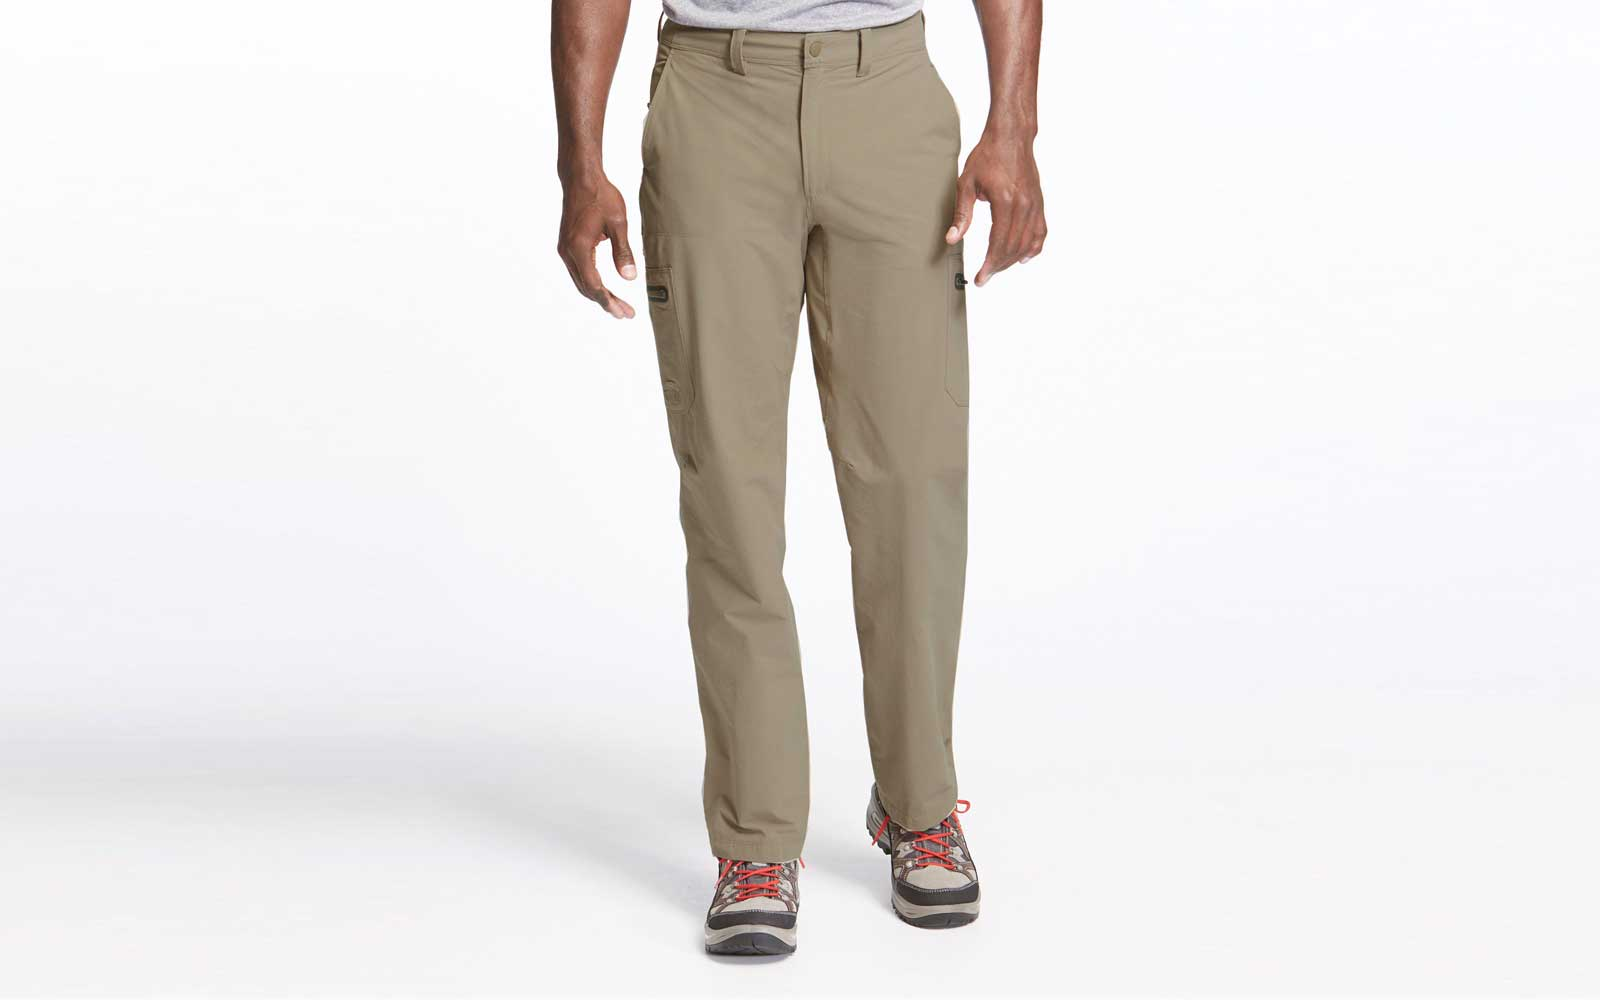 6e9465de044 The Best Men s Travel Pants for Every Type of Trip